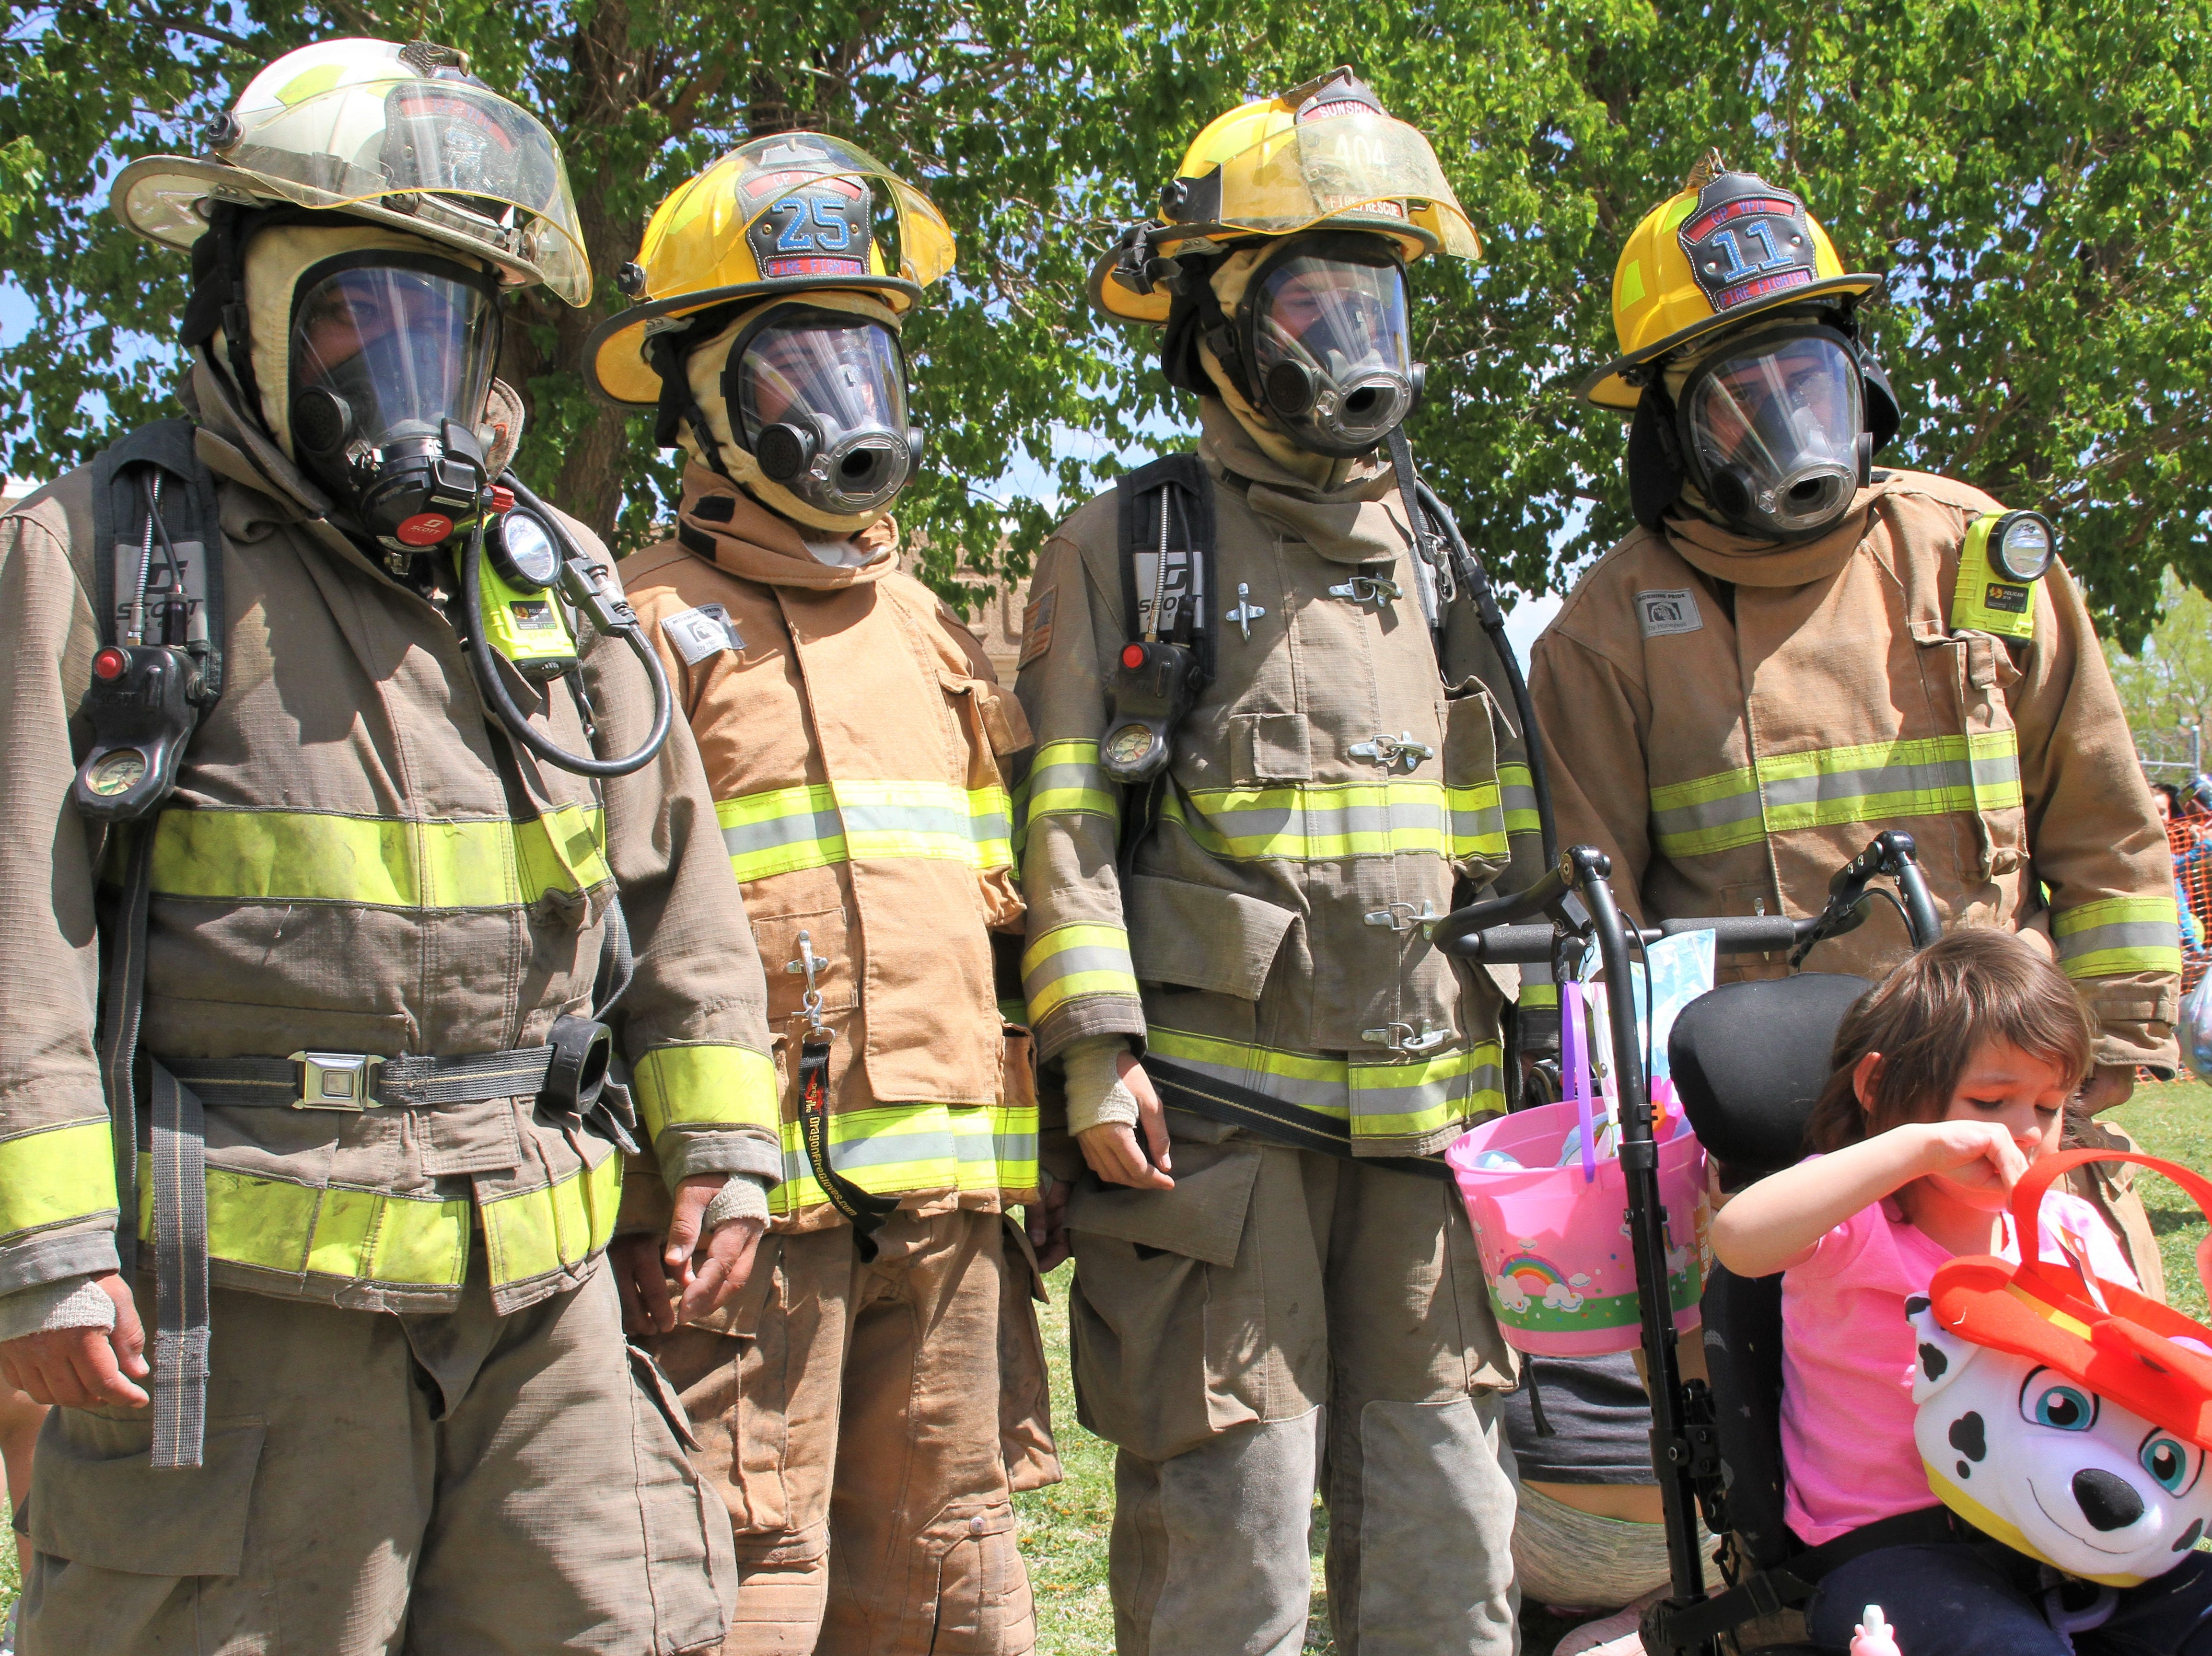 Deming Fire assisted children with exceptionalities. Here they are with Audi.